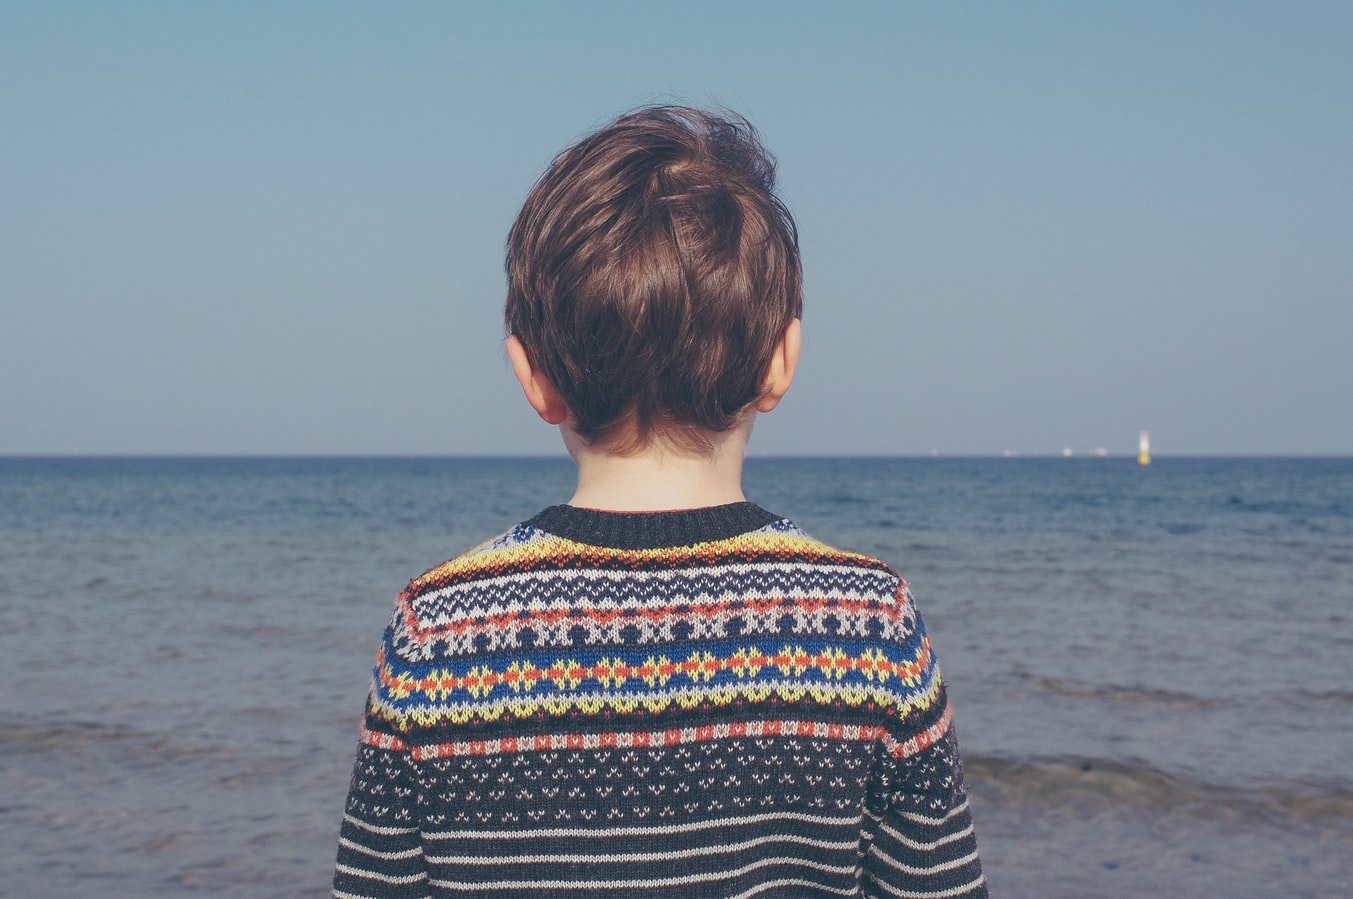 Reactive attachment disorder of infancy or early childhood